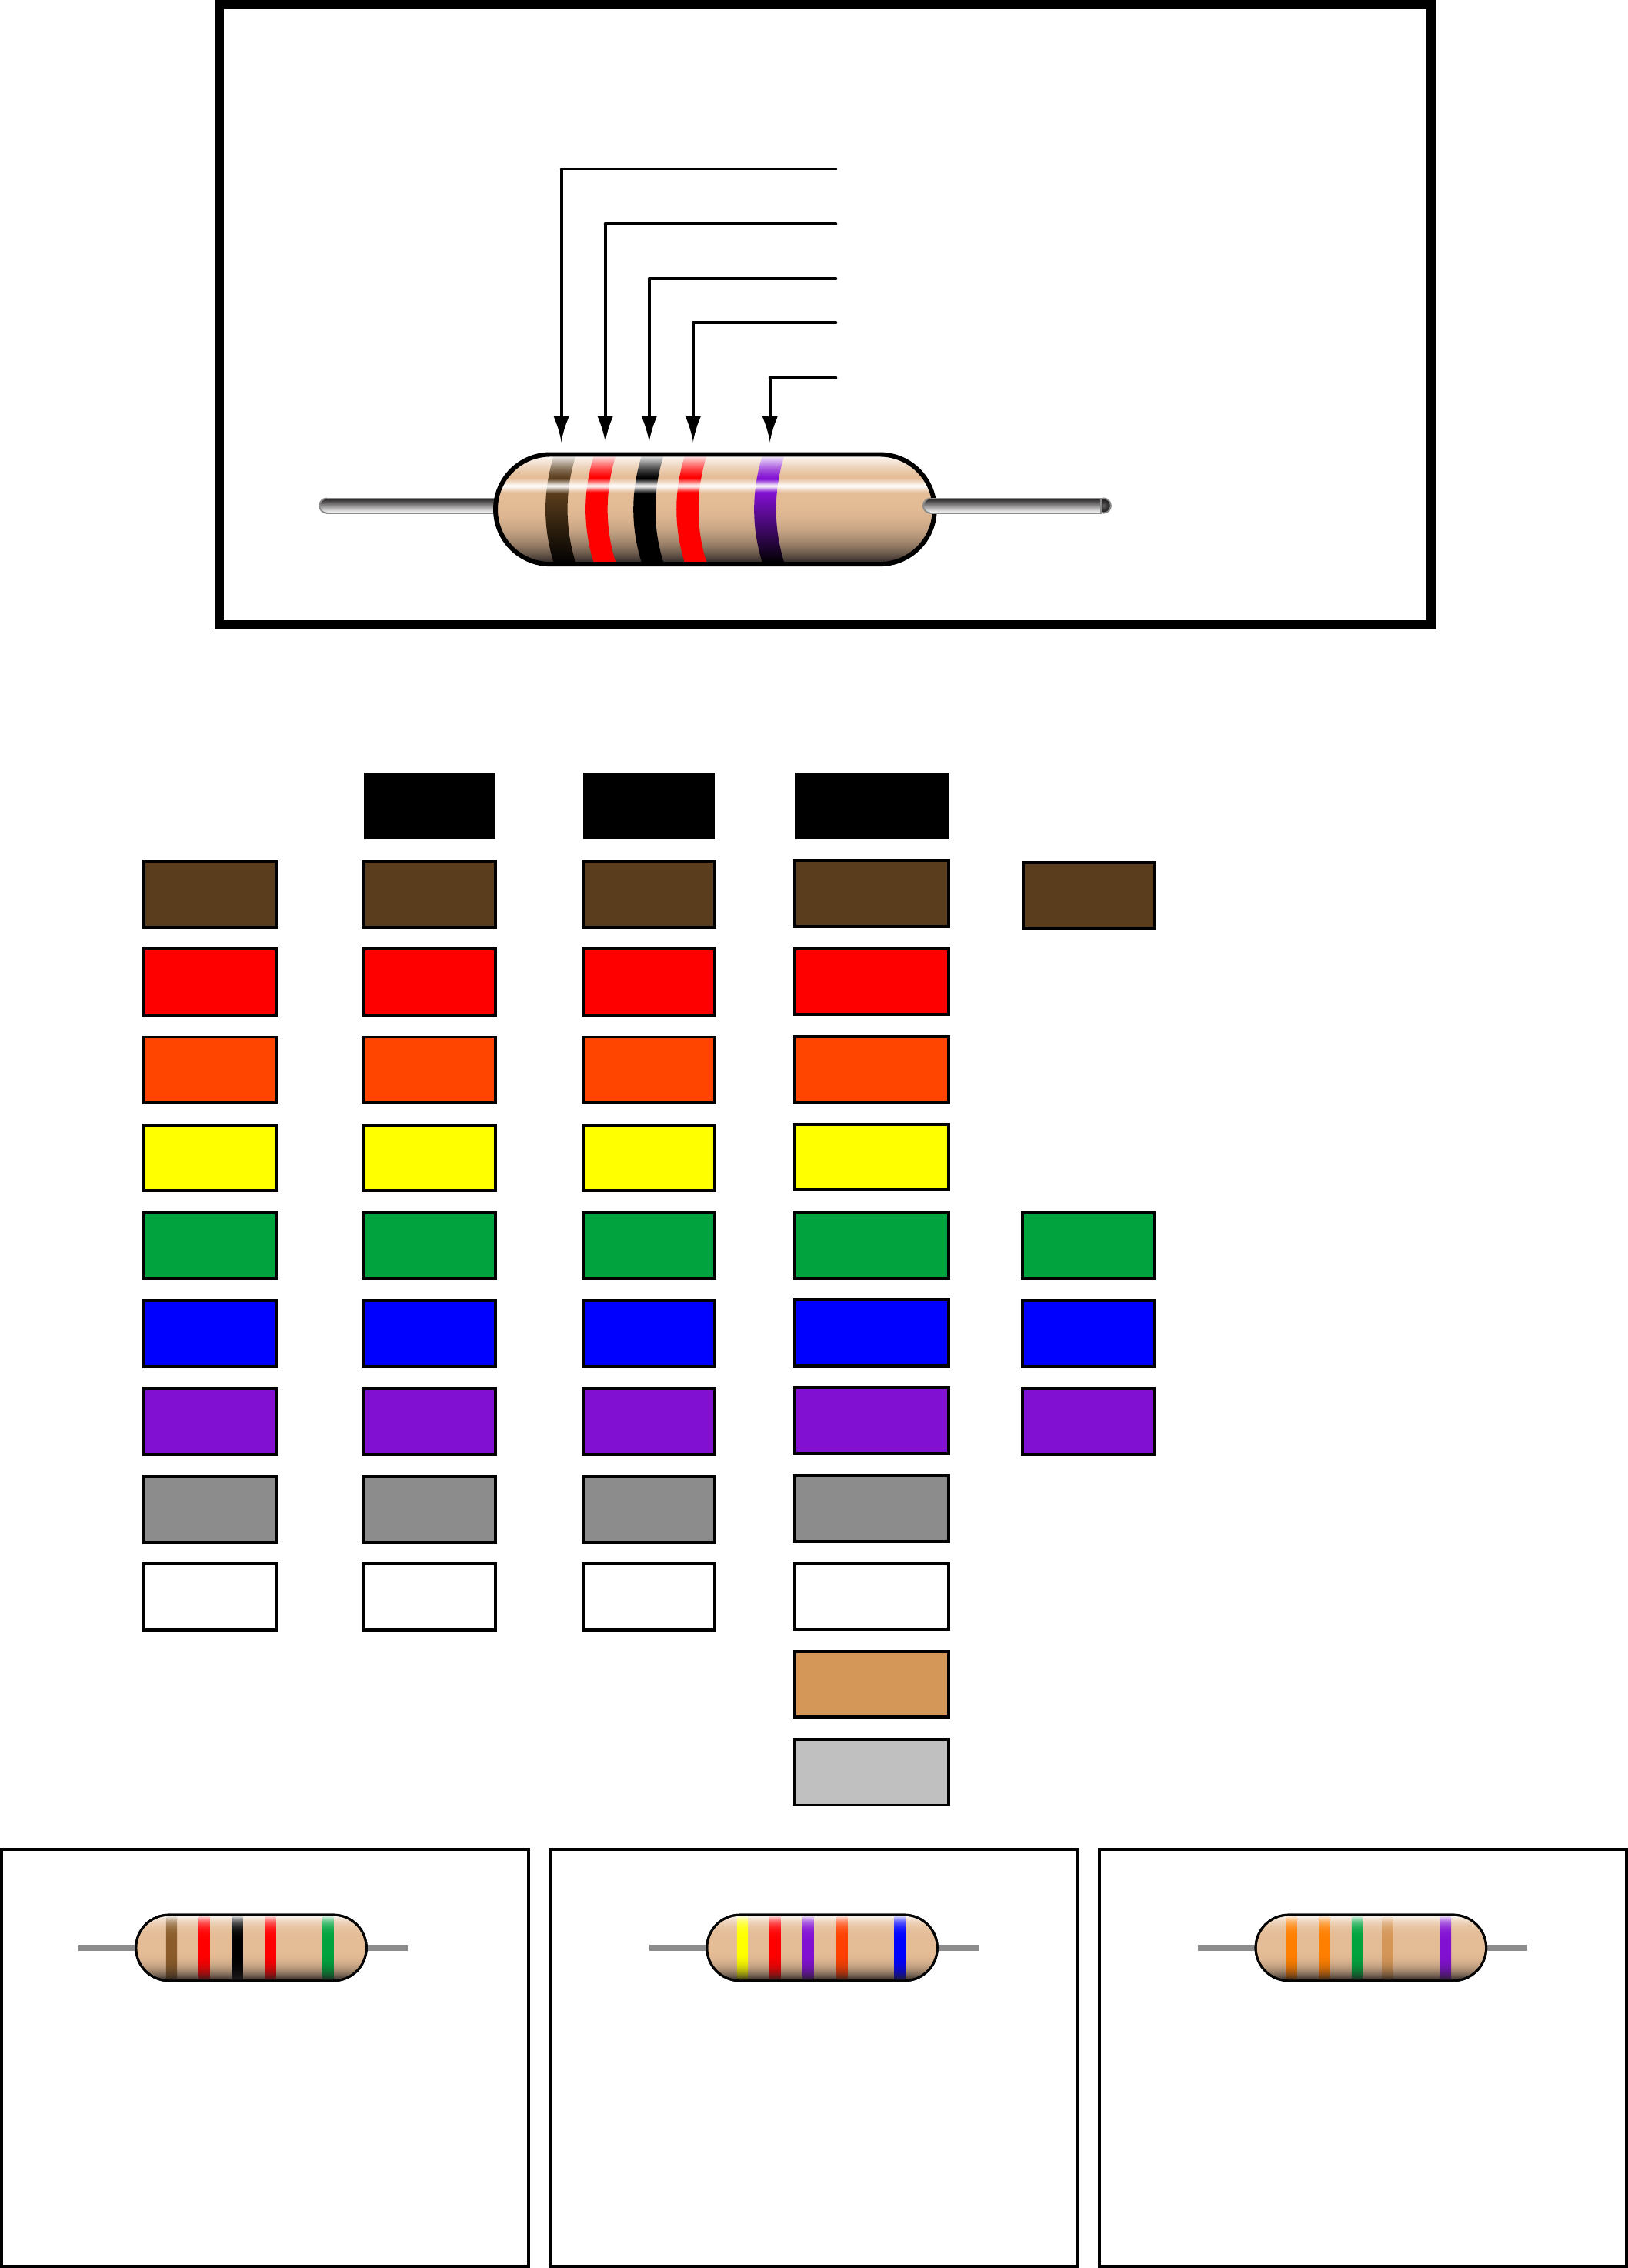 Resistor color code chart 4 band resistor color code calculator and chart